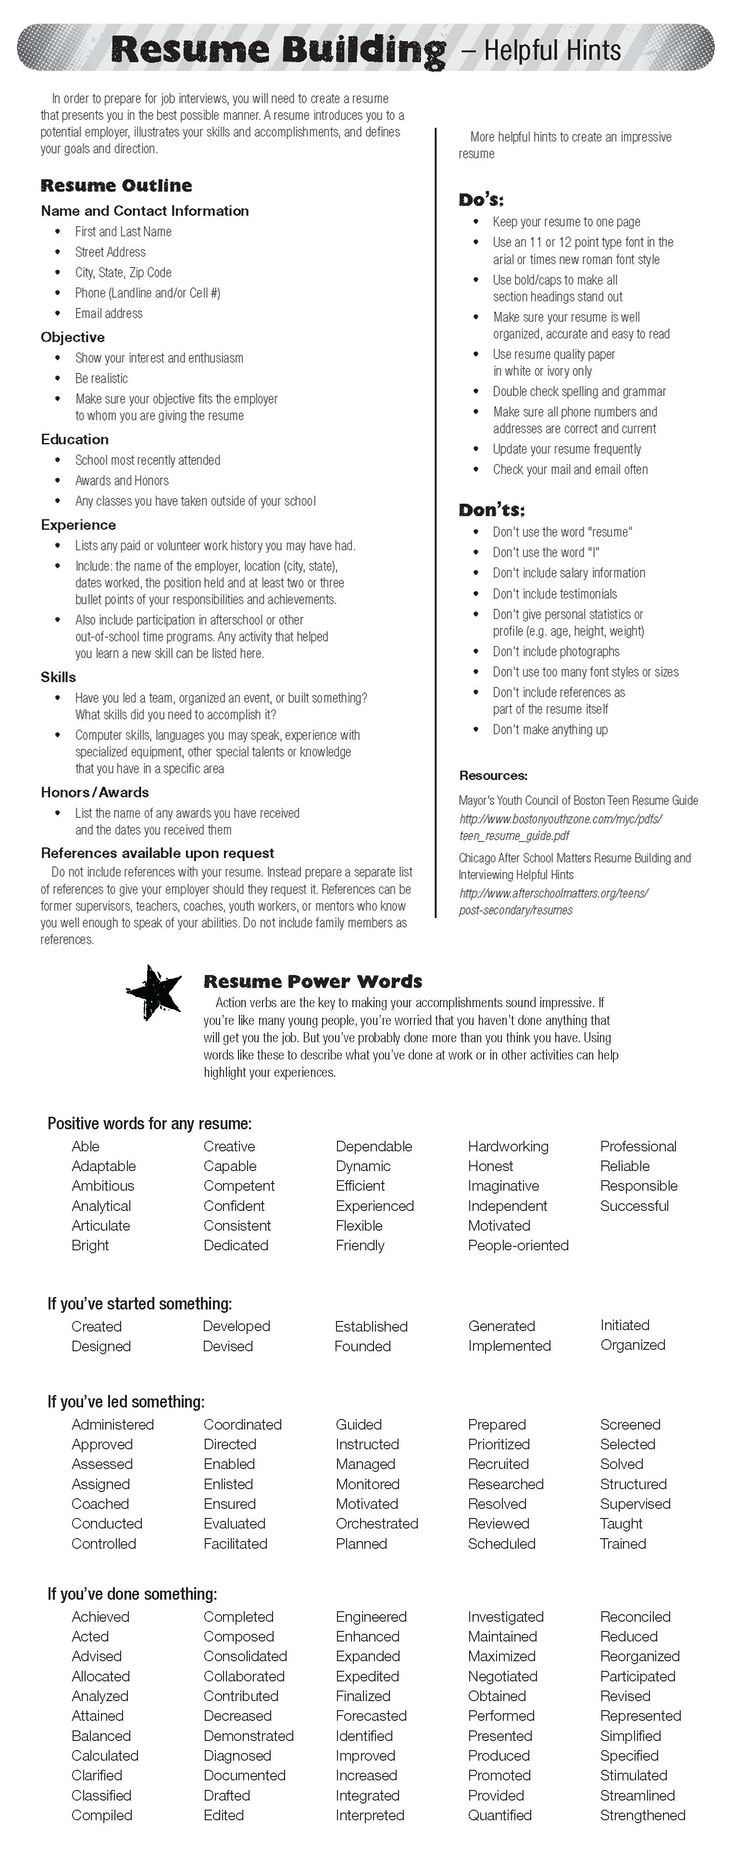 Picnictoimpeachus  Surprising  Ideas About Resume On Pinterest  Cv Format Resume  With Licious Check Out Todays Resume Building Tips Resume Resumepowerwords With Beauteous Resume Examples For Servers Also Make My Own Resume In Addition Environmental Science Resume And Resume For Housekeeper As Well As What Is The Difference Between Resume And Cv Additionally Resume Font And Size From Pinterestcom With Picnictoimpeachus  Licious  Ideas About Resume On Pinterest  Cv Format Resume  With Beauteous Check Out Todays Resume Building Tips Resume Resumepowerwords And Surprising Resume Examples For Servers Also Make My Own Resume In Addition Environmental Science Resume From Pinterestcom